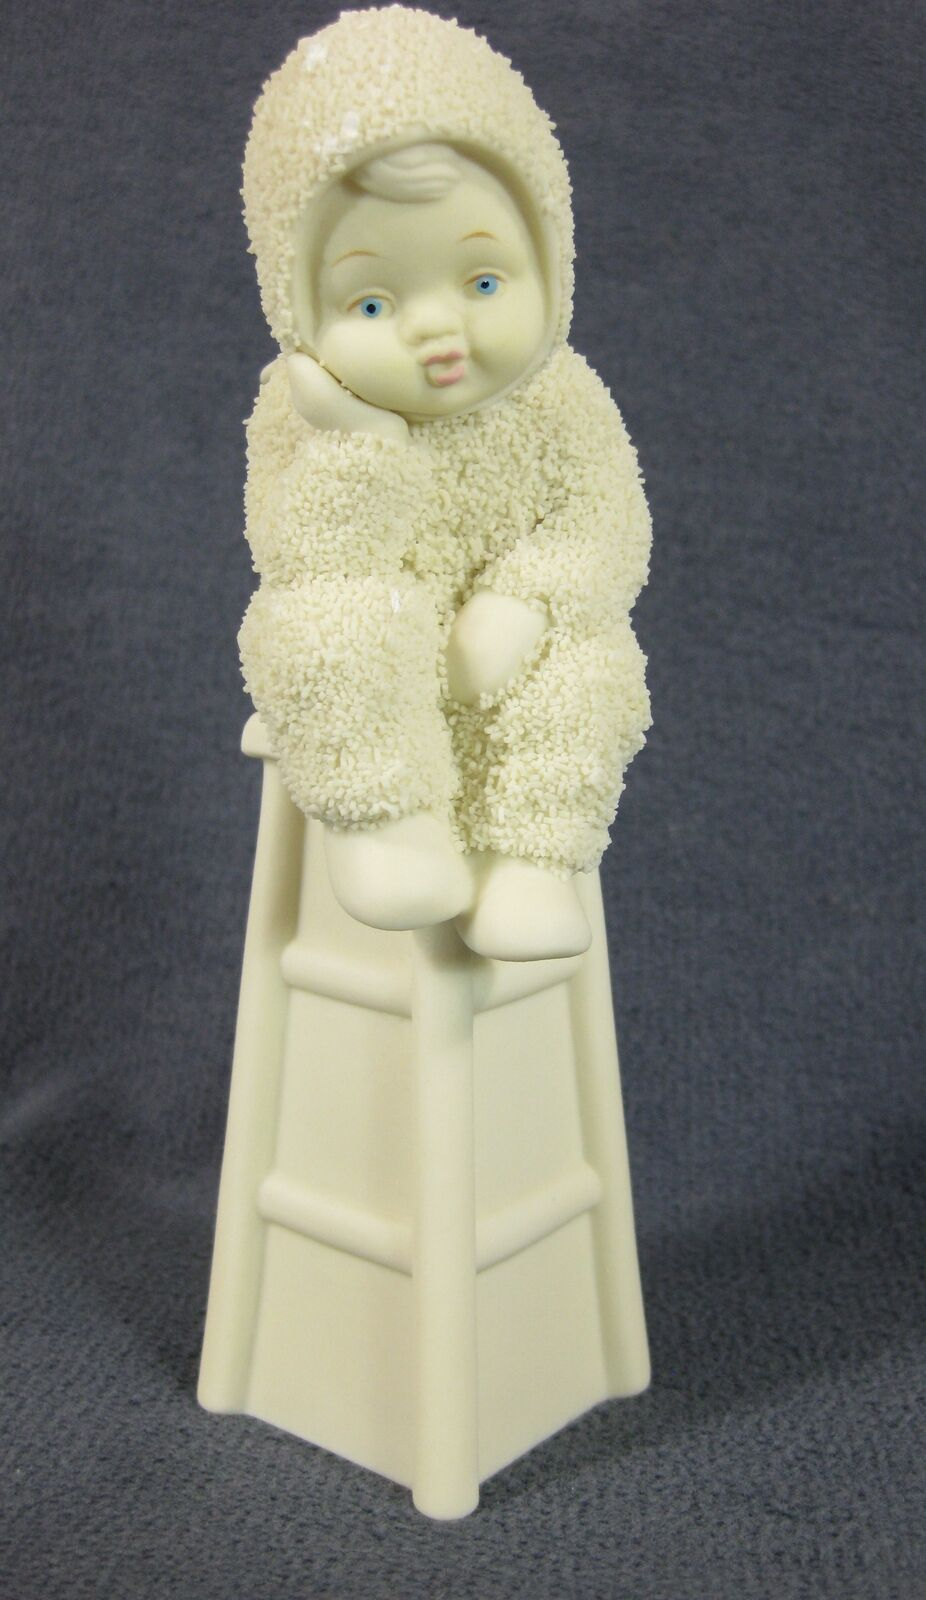 Primary image for Snowbabies Time Out 69075 Department 56 Figurine Retired Boxed 2000